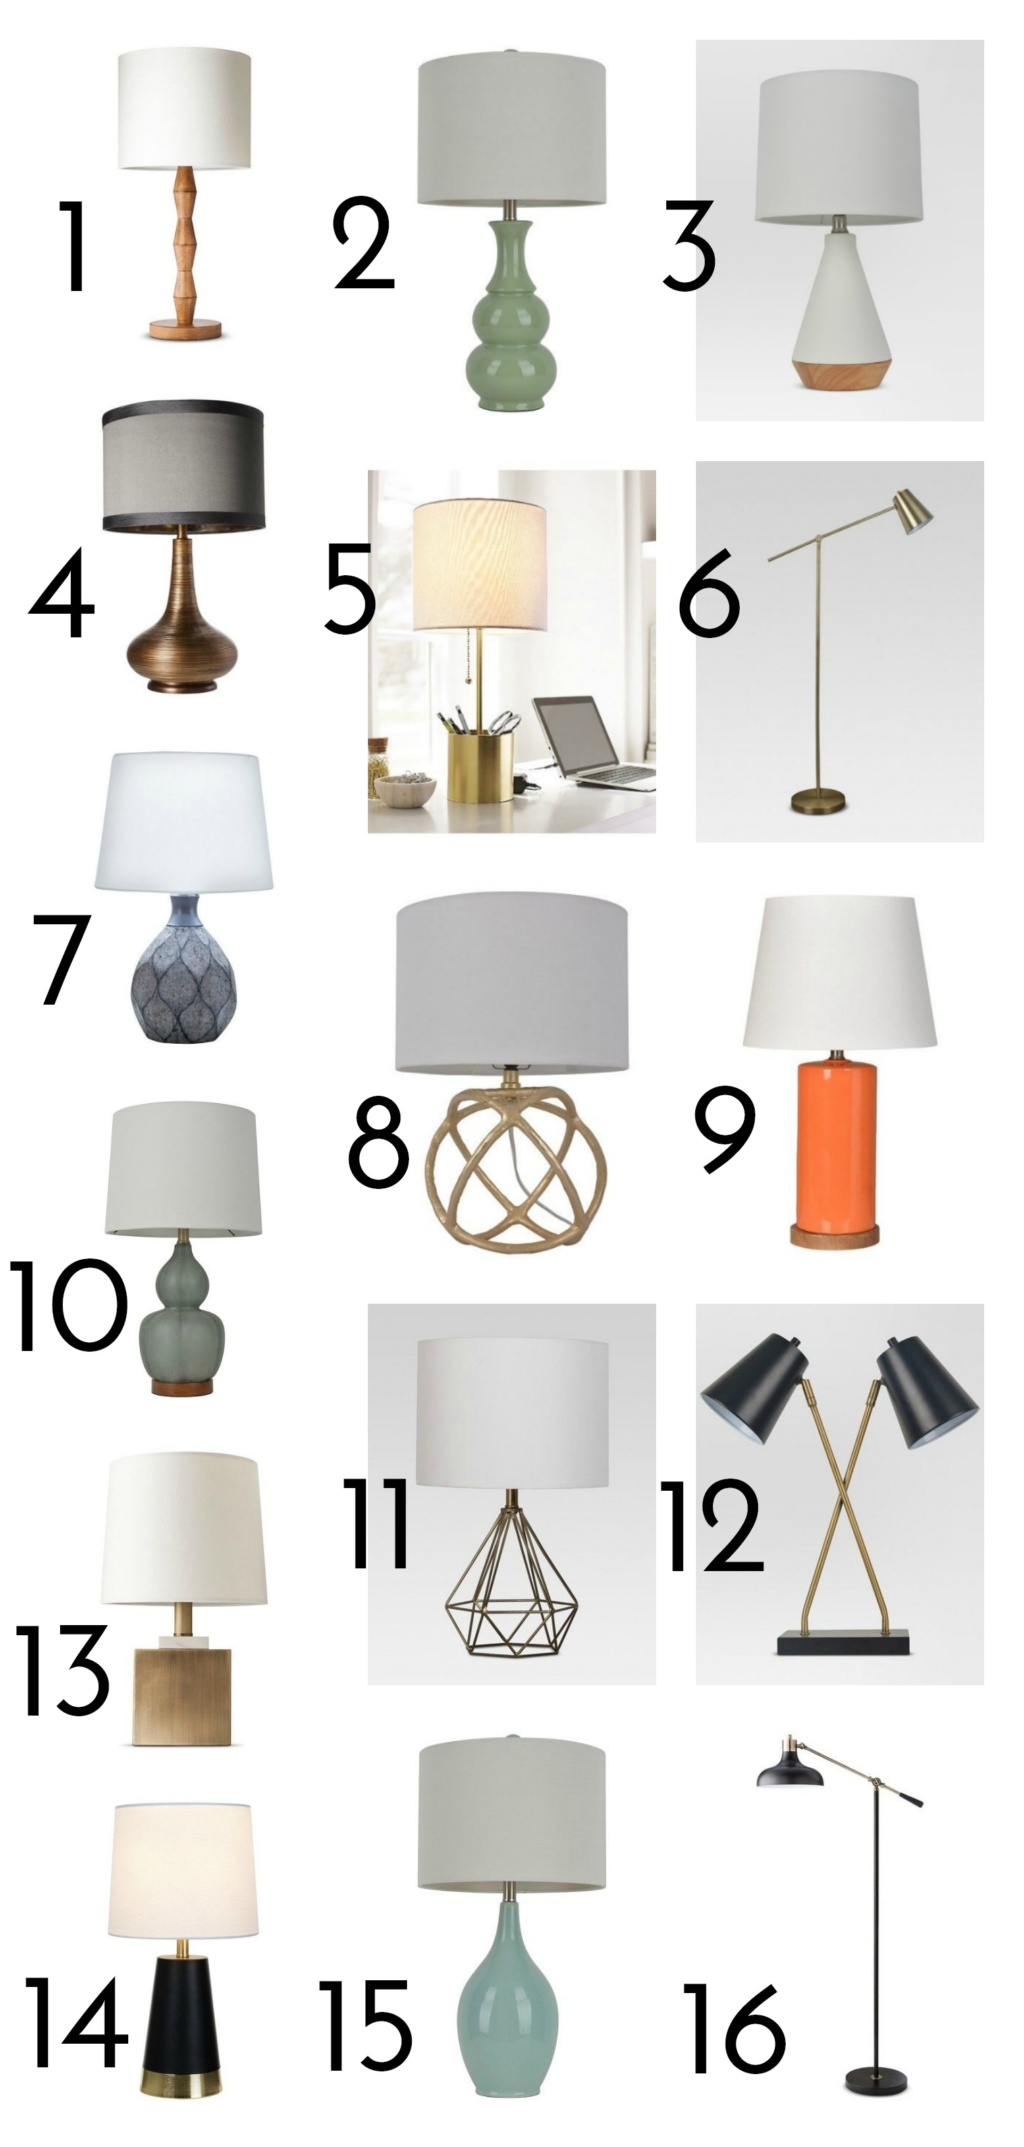 Where to buy lamps that are gorgeous and affordable 1 nixon 3999 2 green ceramic lamp 4603 3 modern tapered ceramic 2499 4 turned metallic 3848 5 stick lamp with storage aloadofball Image collections